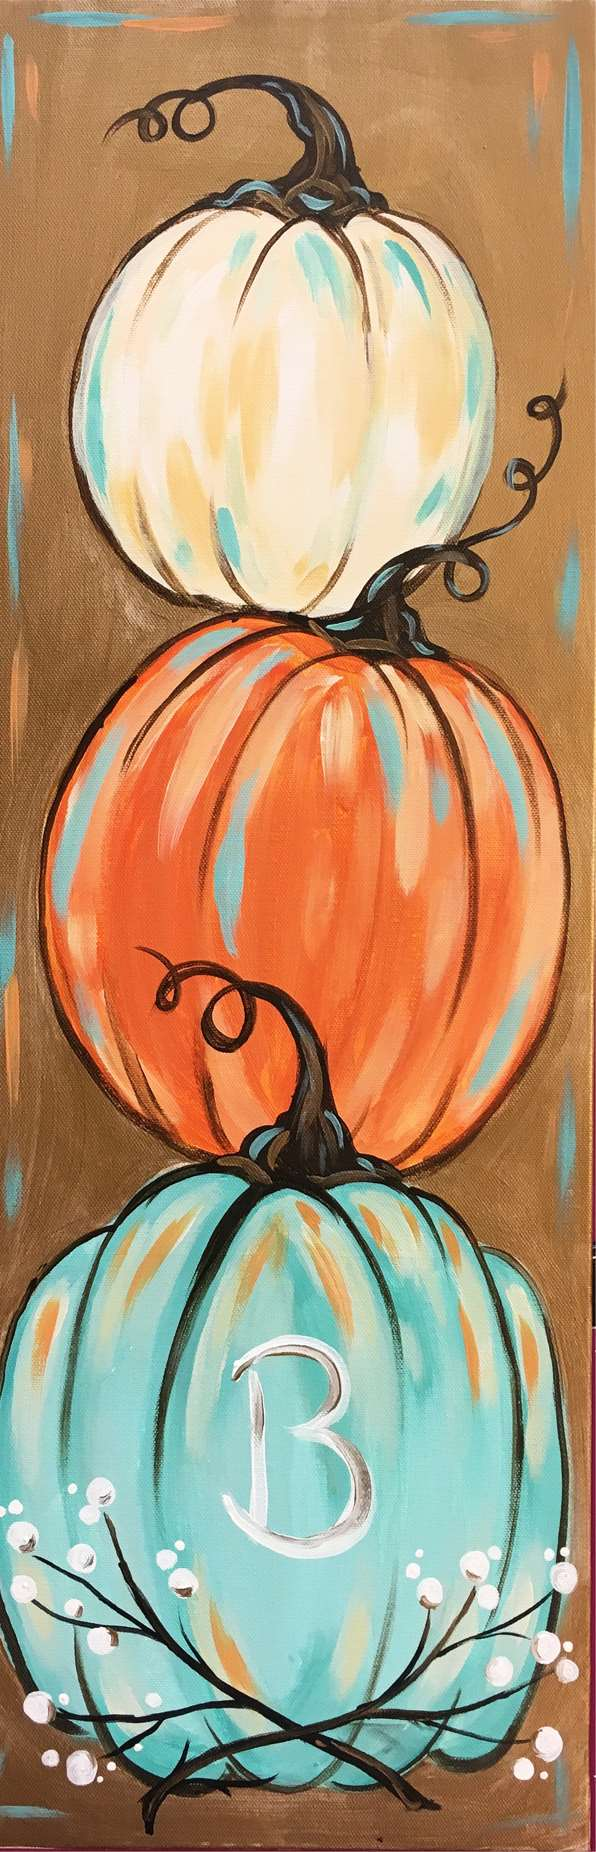 LIVE VIRTUAL CLASS: PLEASANTLY PUMPKIN - WITH ART KIT OR PROVIDE YOUR OWN SUPPLIES